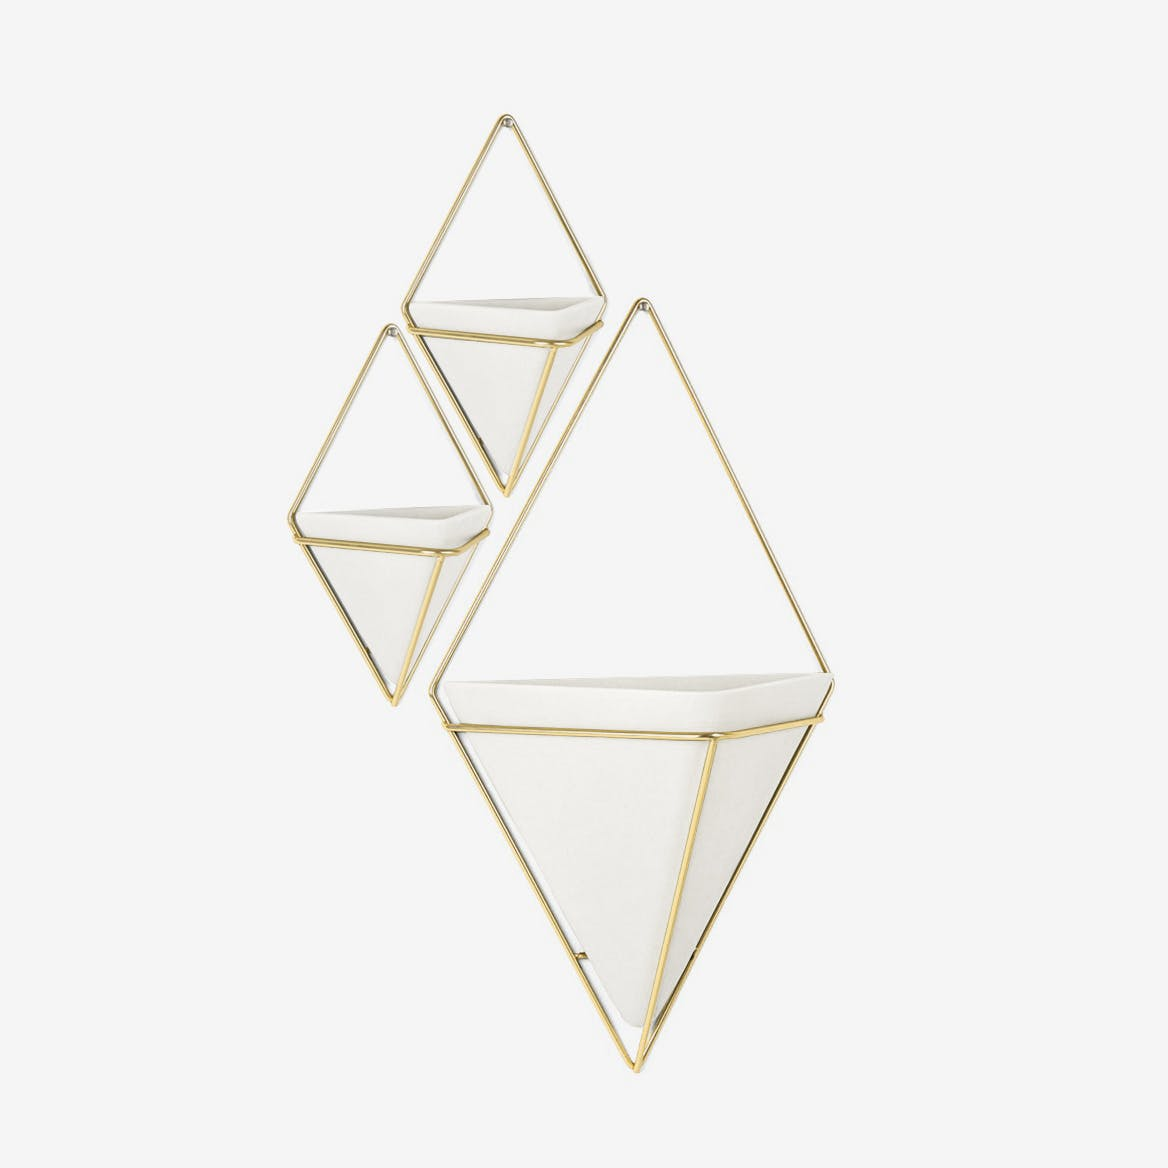 Trigg Wall Display in White & Brass (Set of 3)